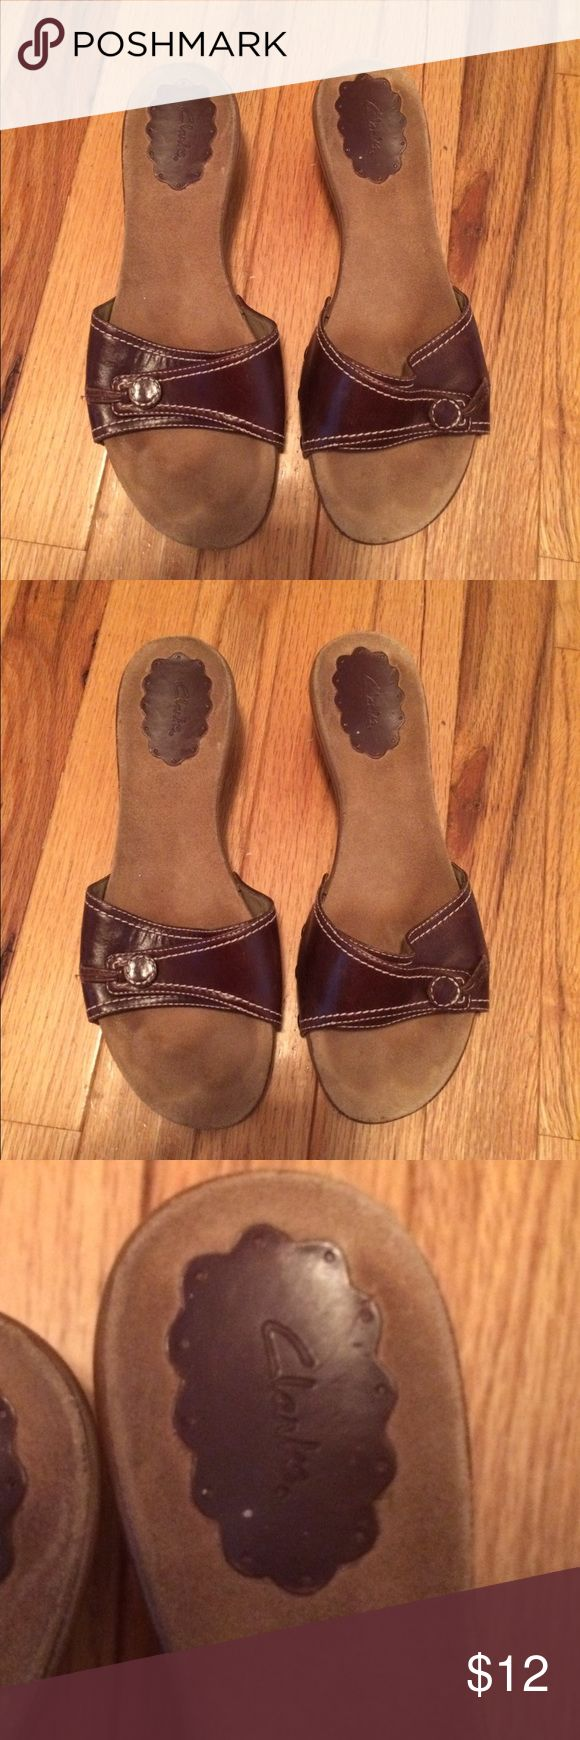 Women's Clark Shoes Women's Brown Clarks Sandals with a small heel. Clarks Shoes Sandals